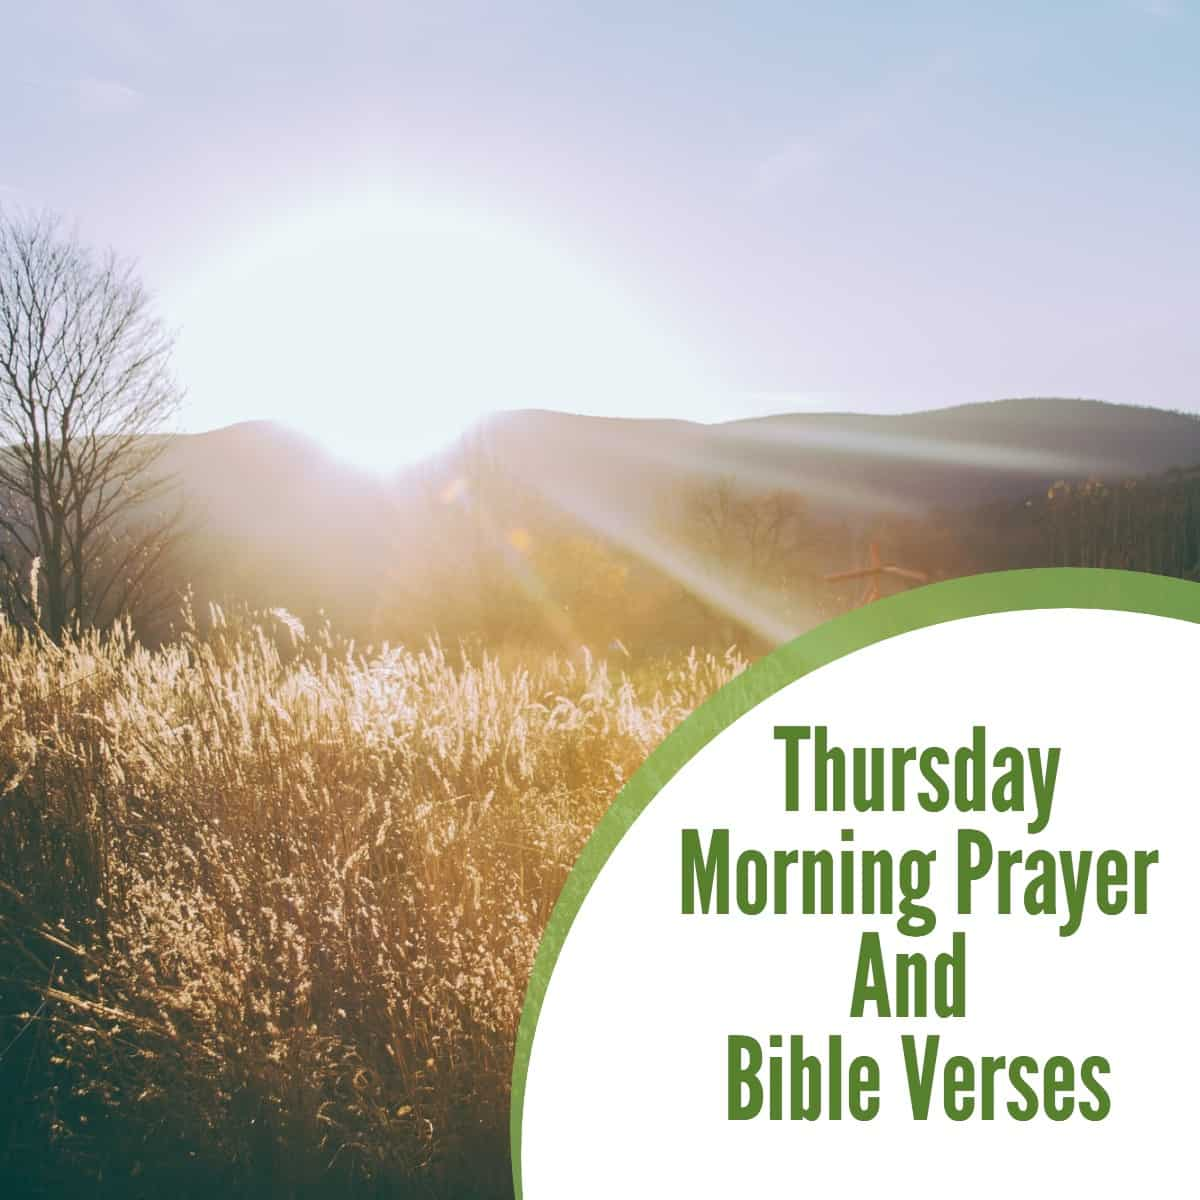 Thursday Morning Prayer And Bible Verses